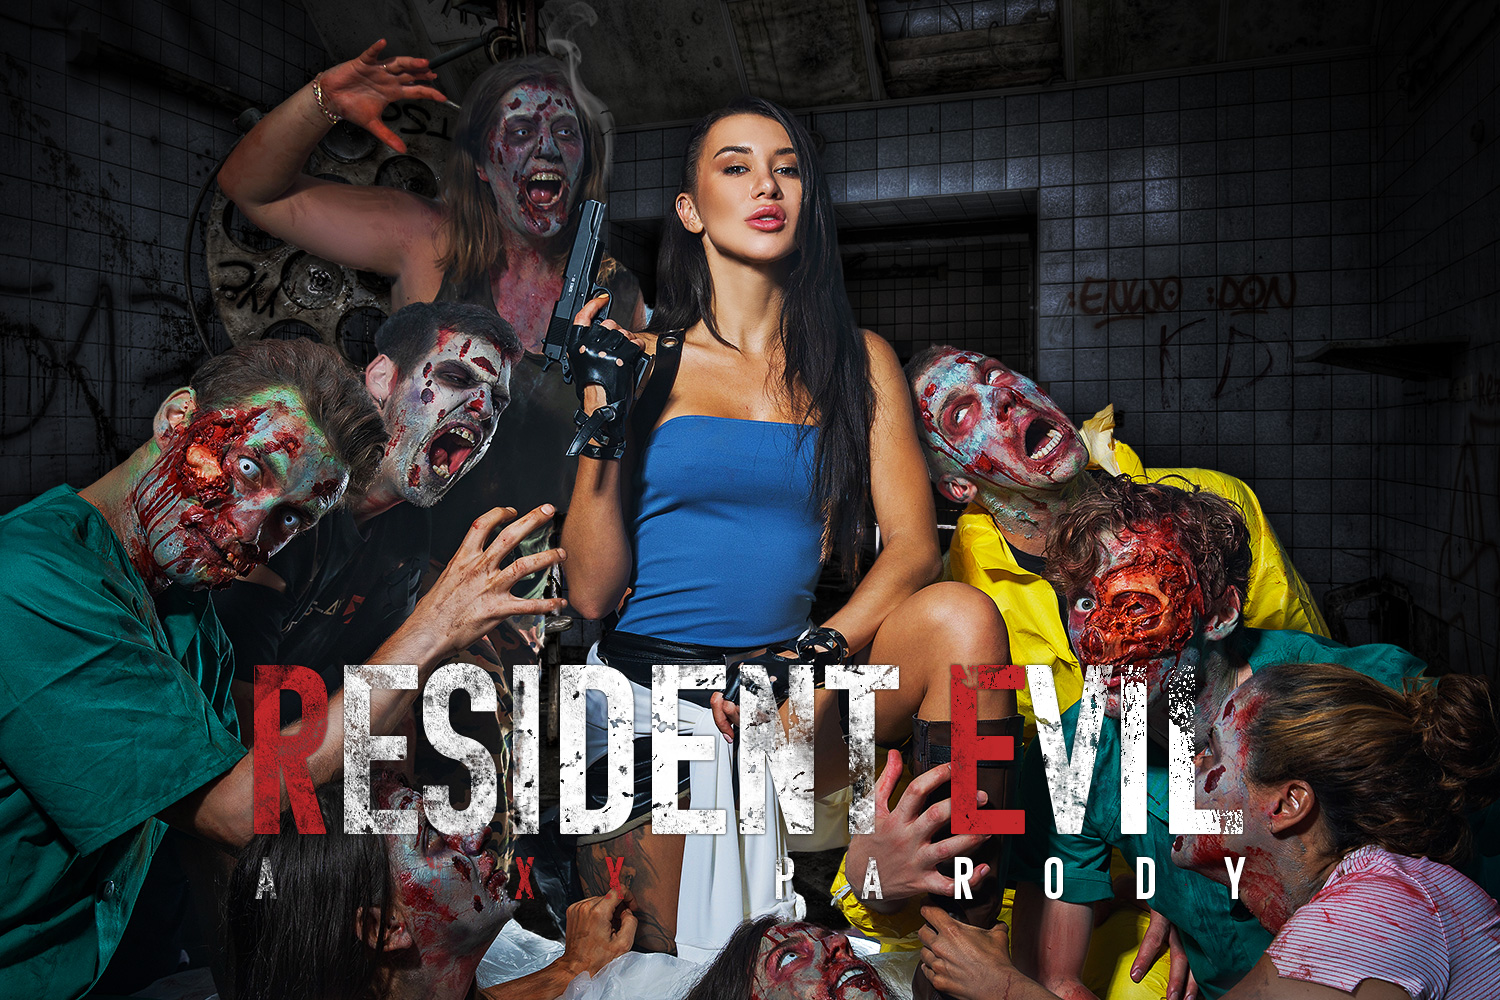 This resident evil zombie porn